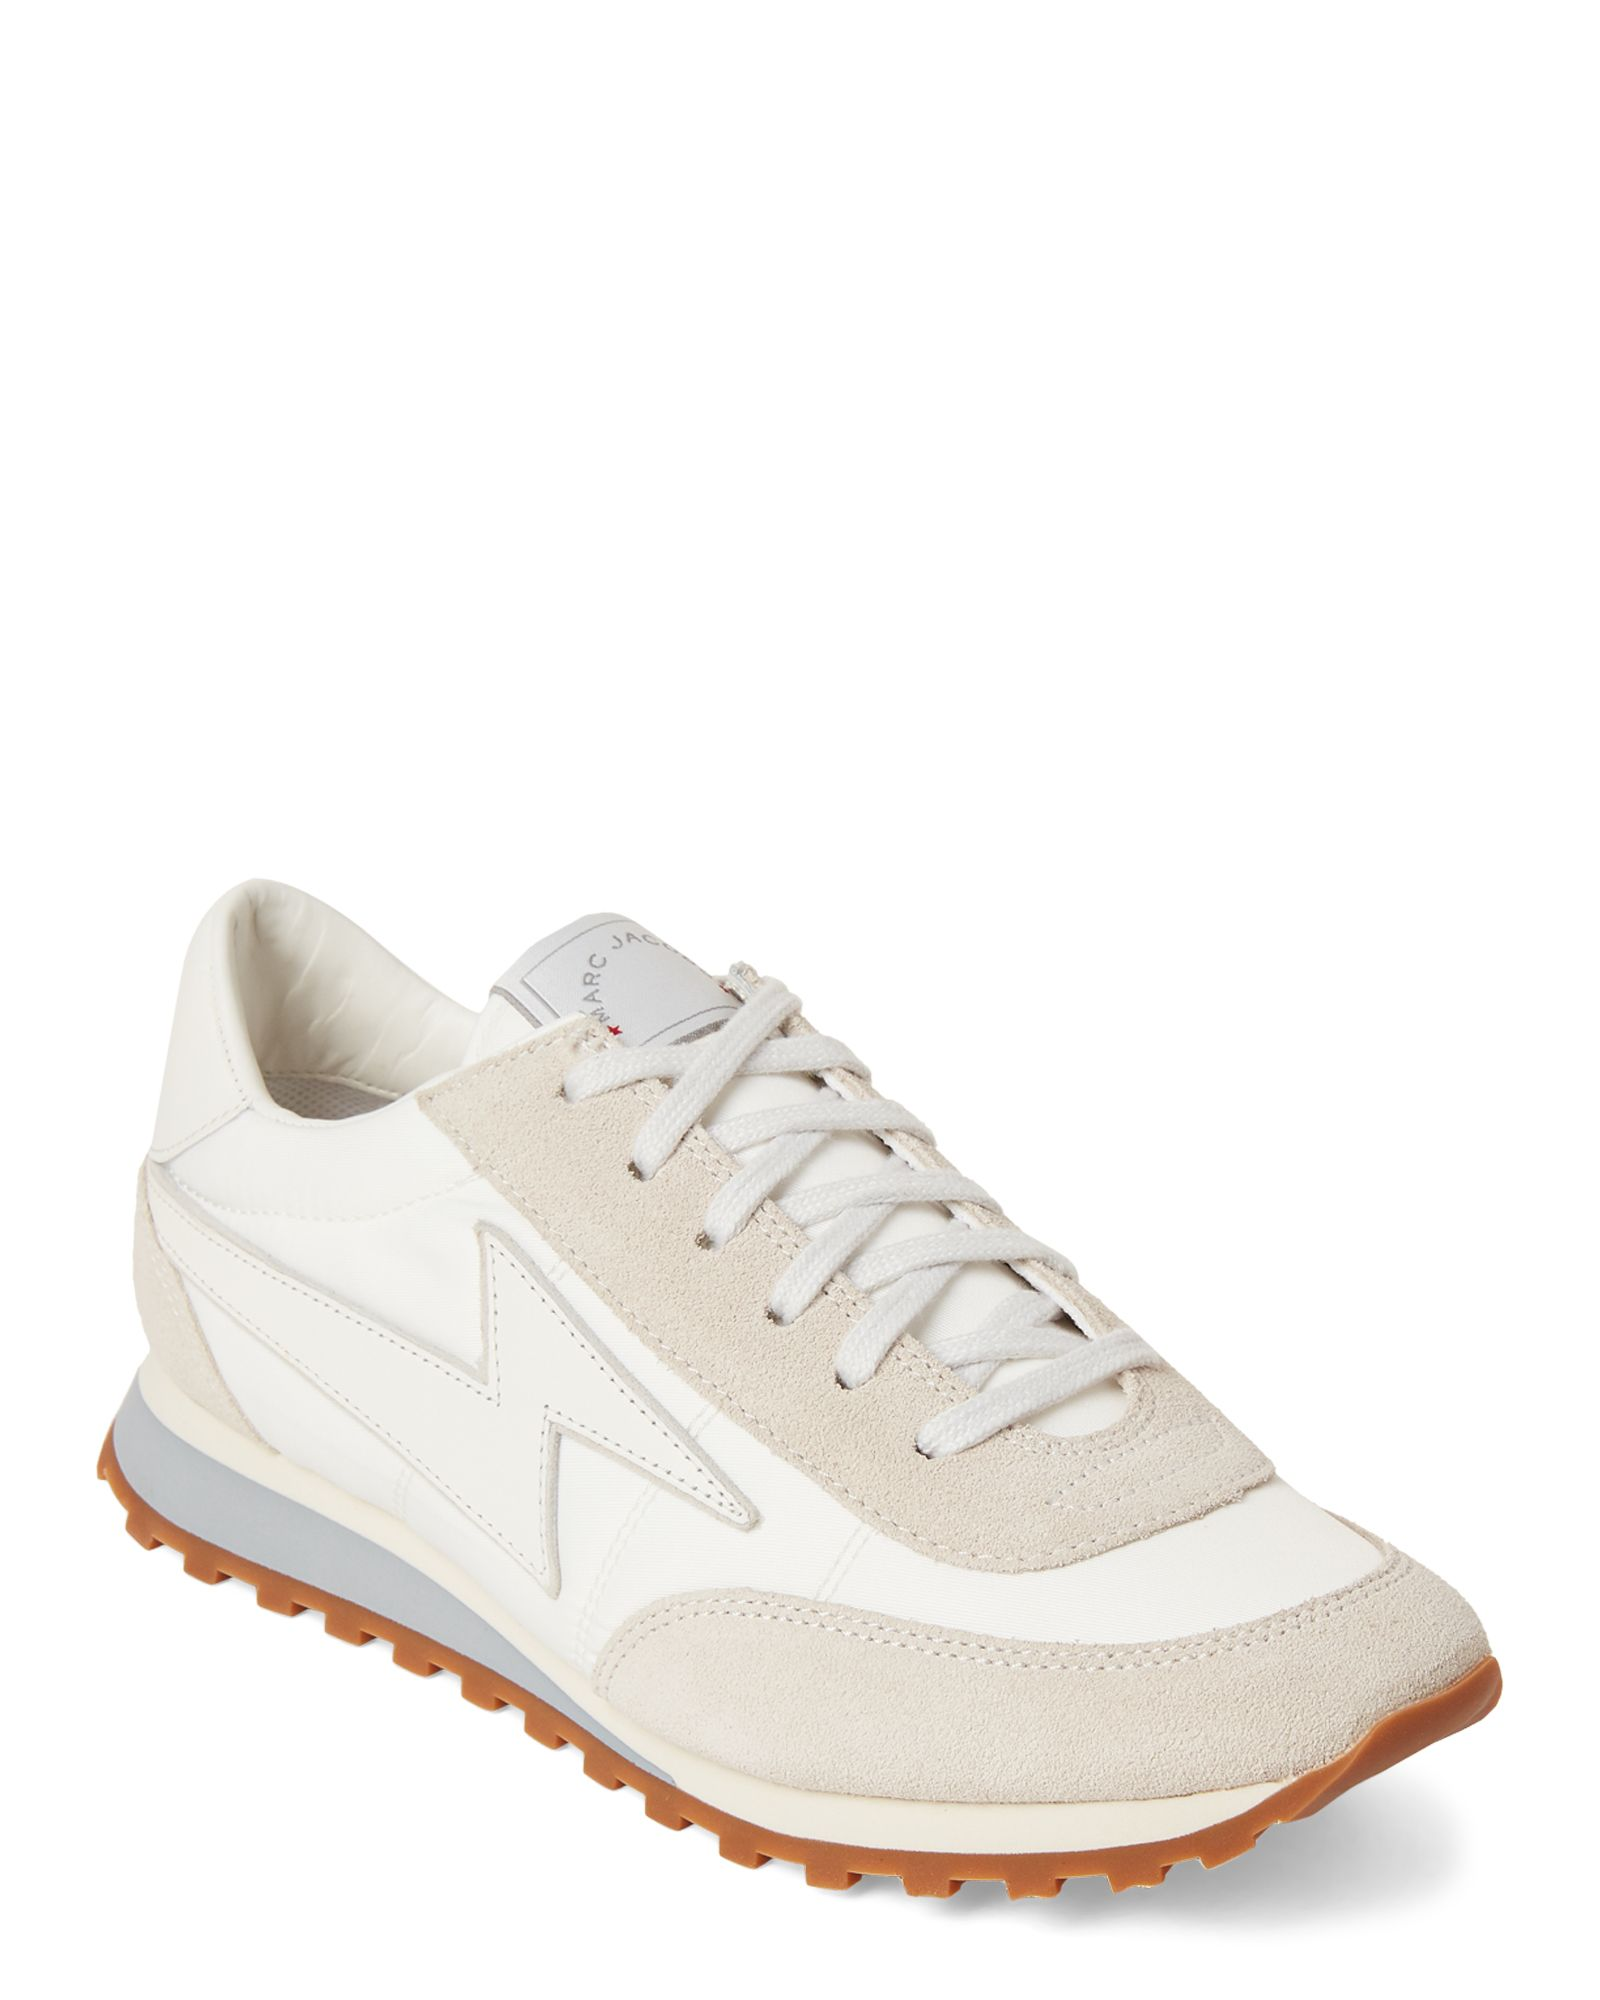 979e7ed89 White Astor Lighting Bolt Low-Top Sneakers in 2019 | *Apparel ...